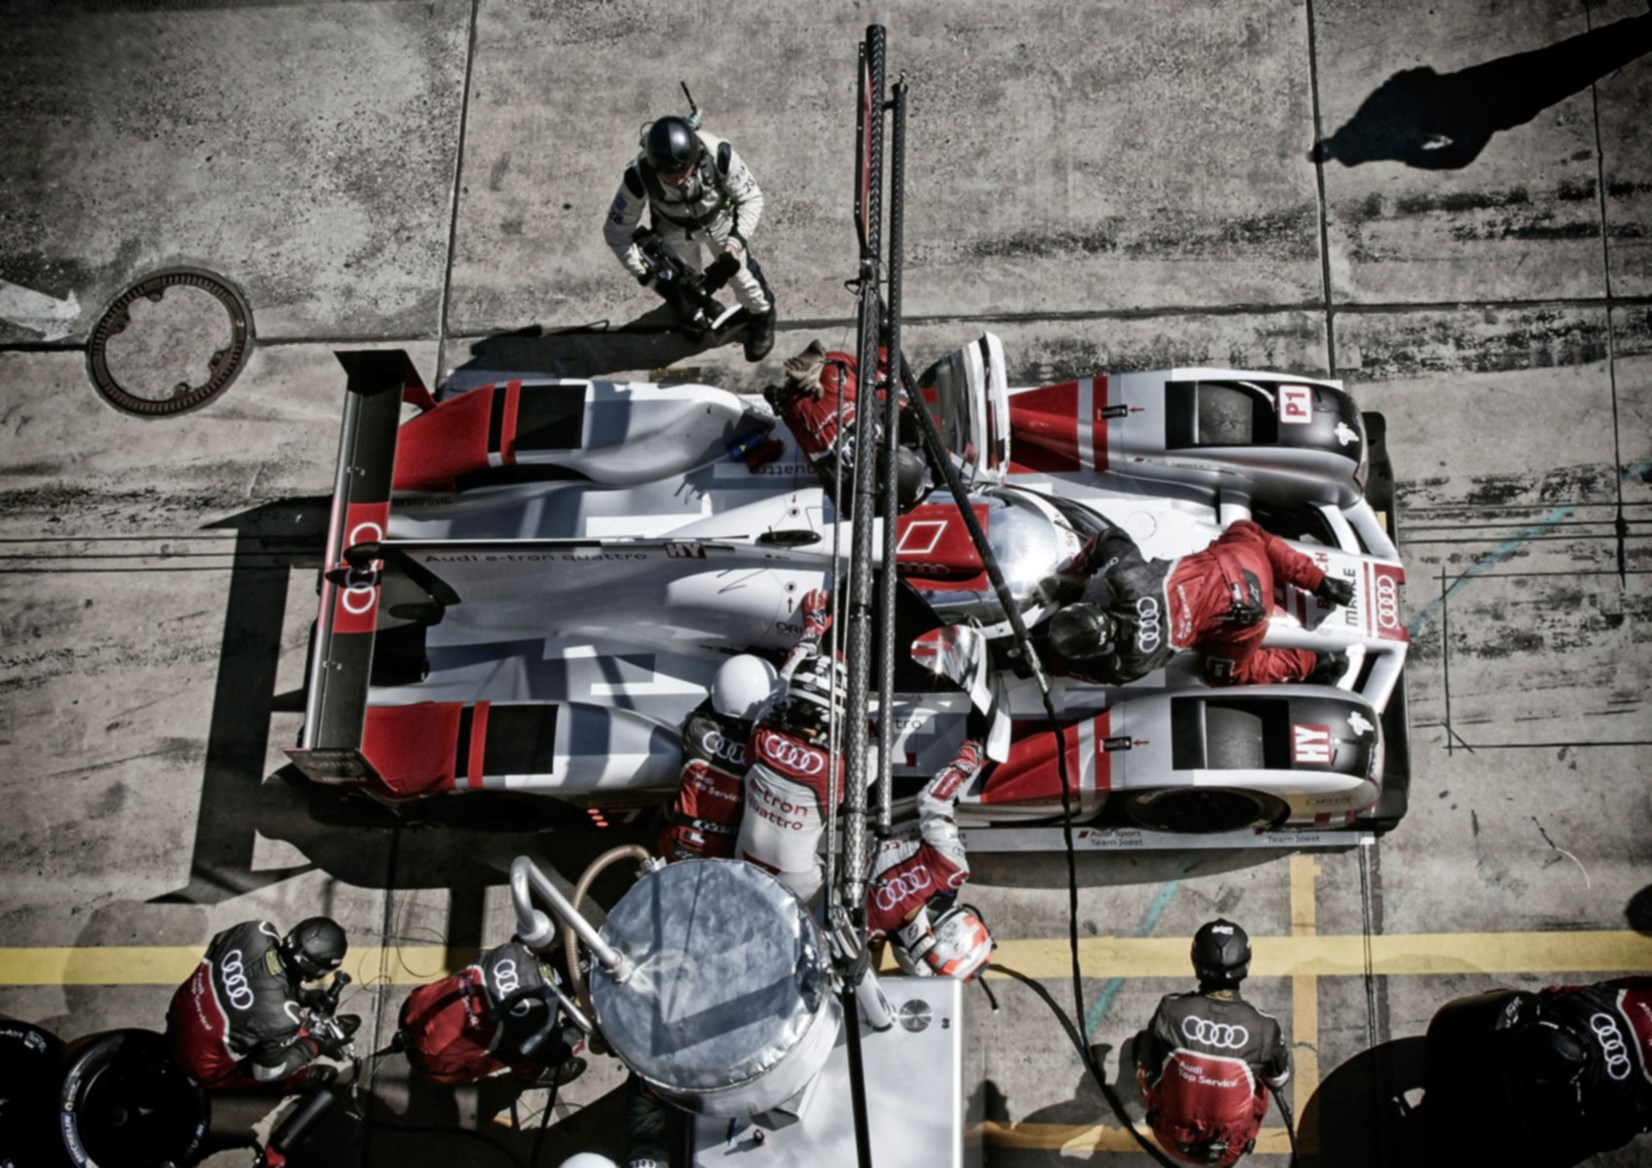 Audi Readying F1 Team With Red Bull In 2018 Will Quit Wec Endurance